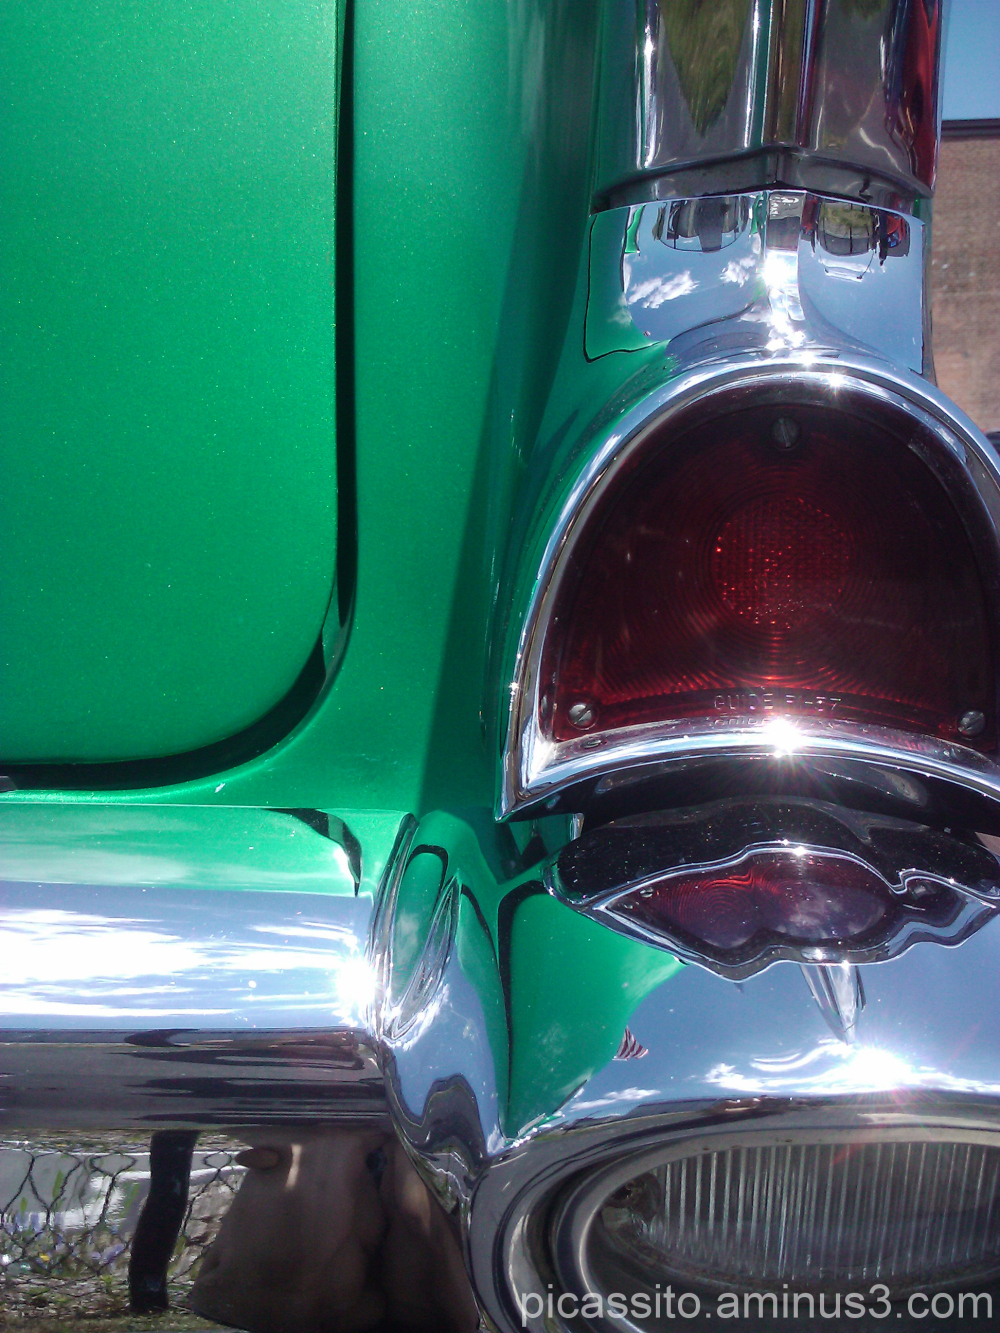 The Green Taillight